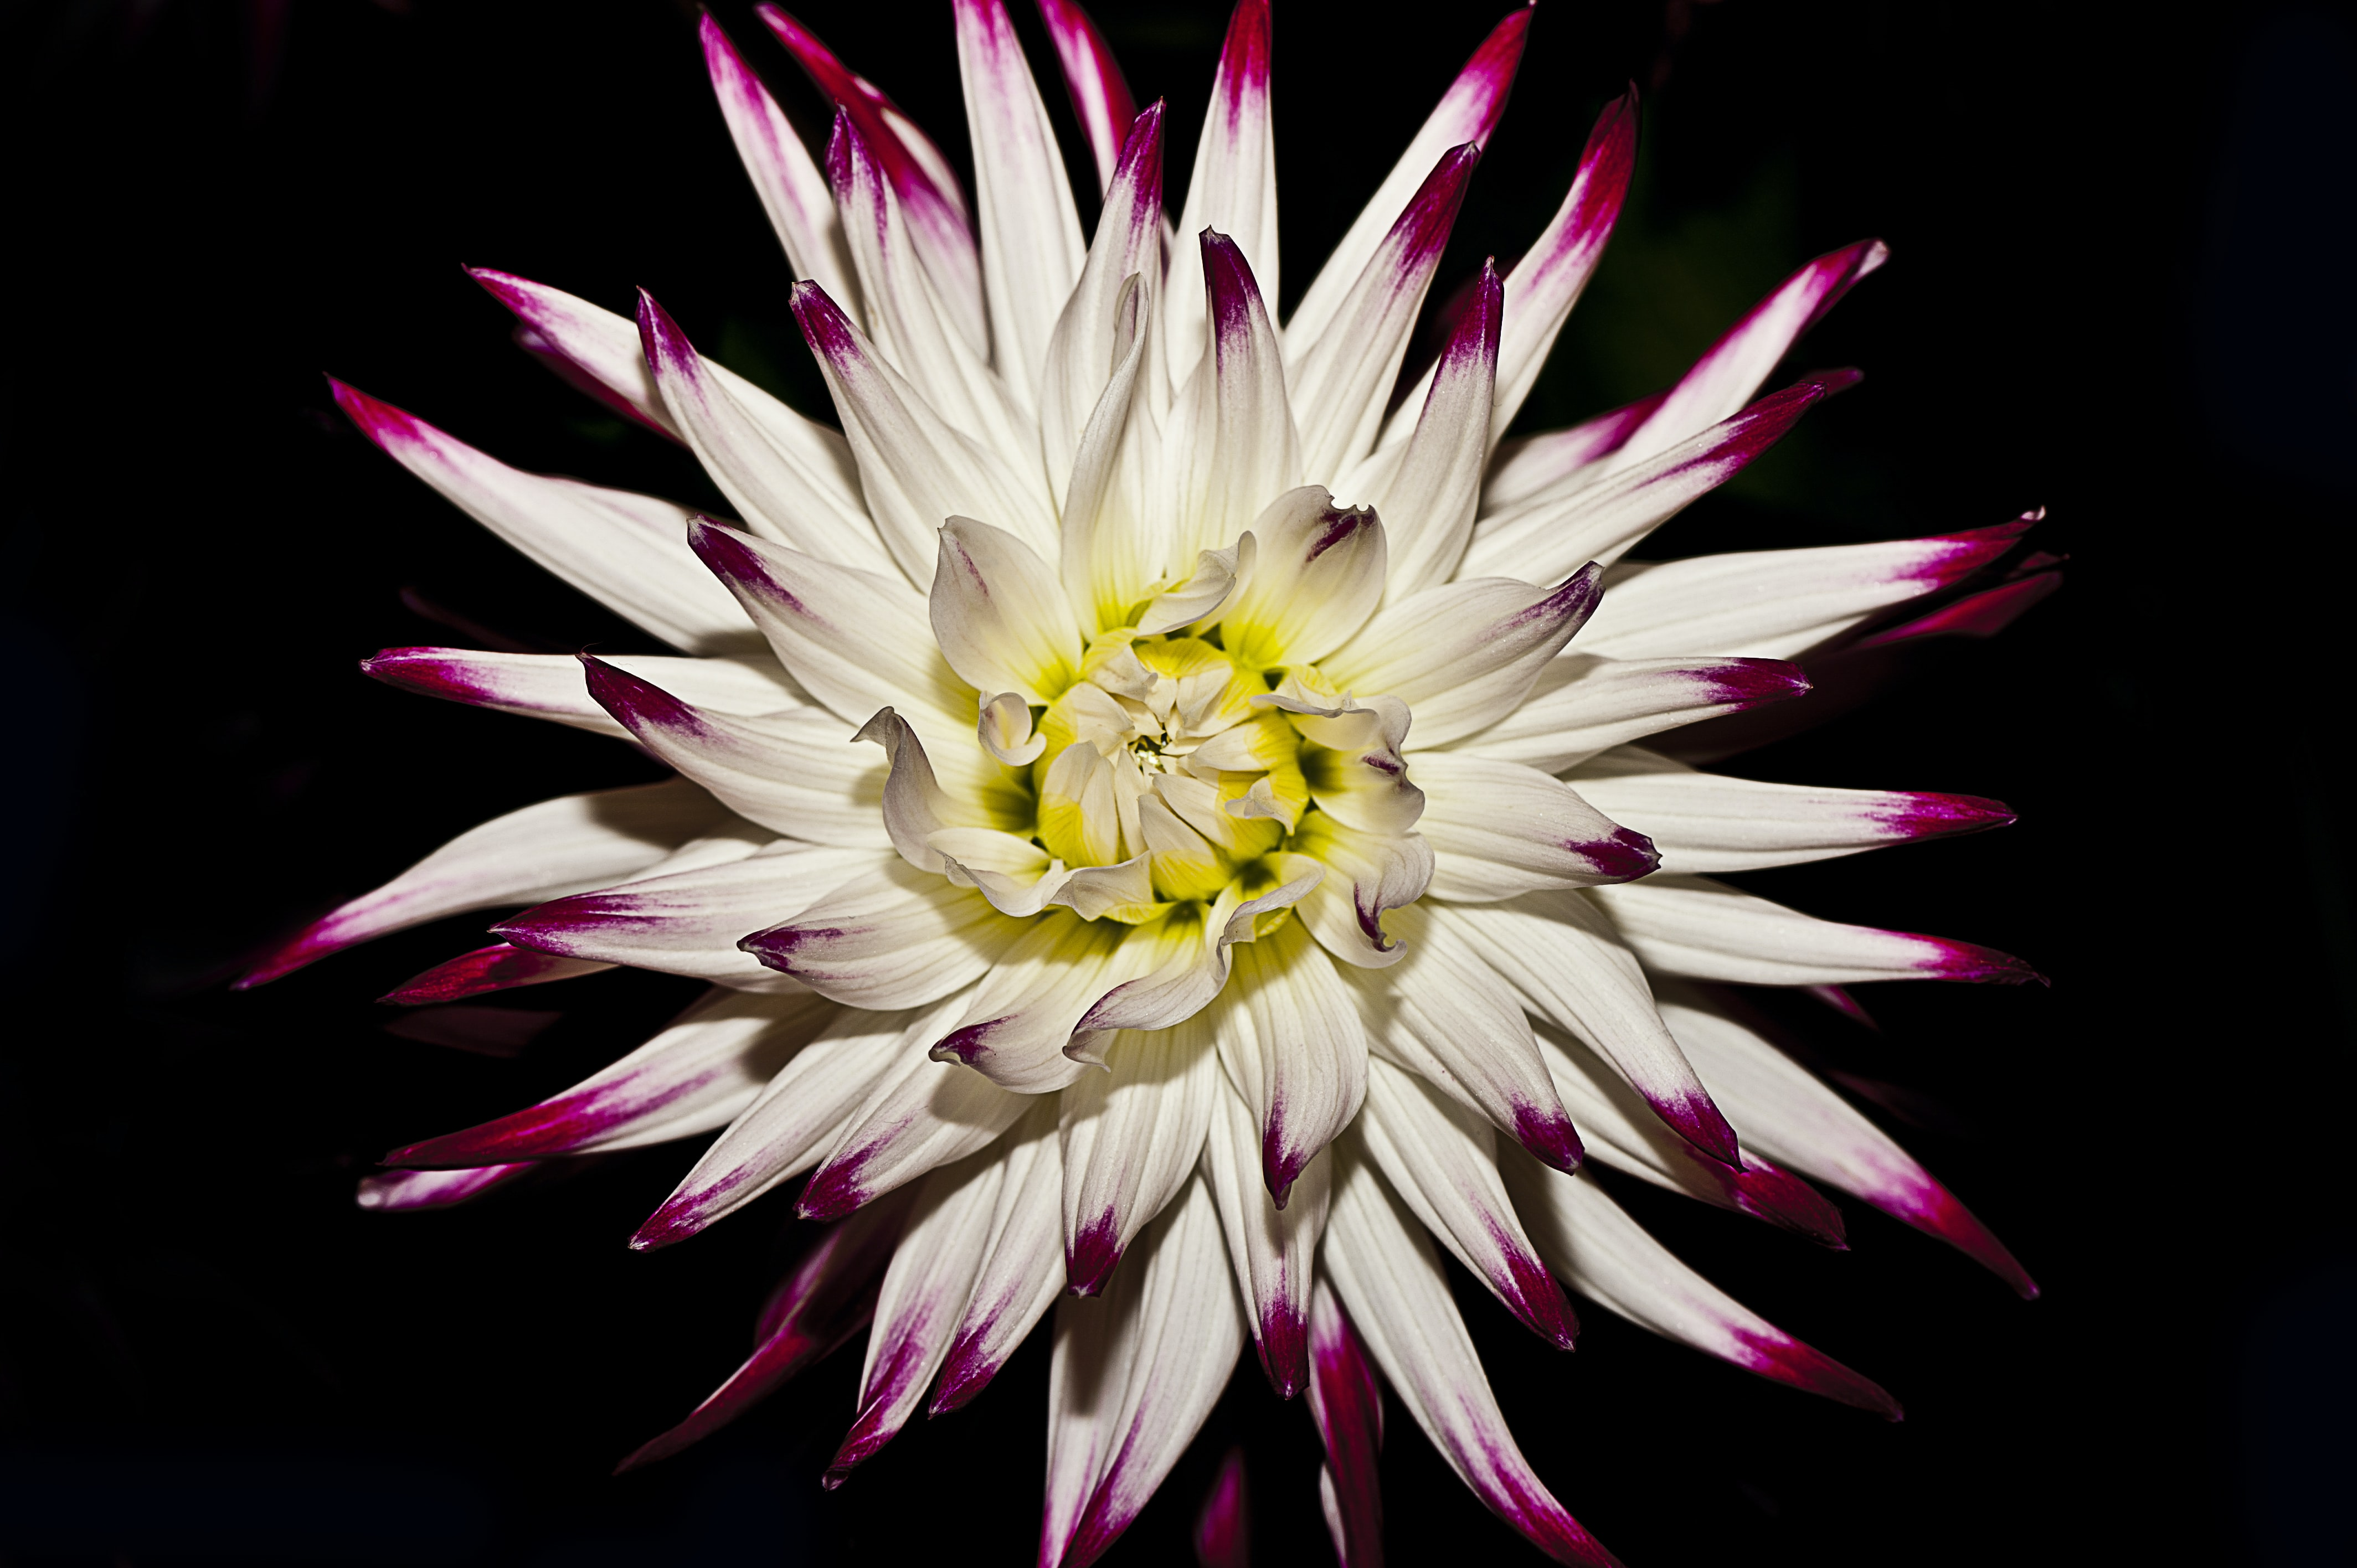 A beautiful white flower with purple spots at the tips of its petals